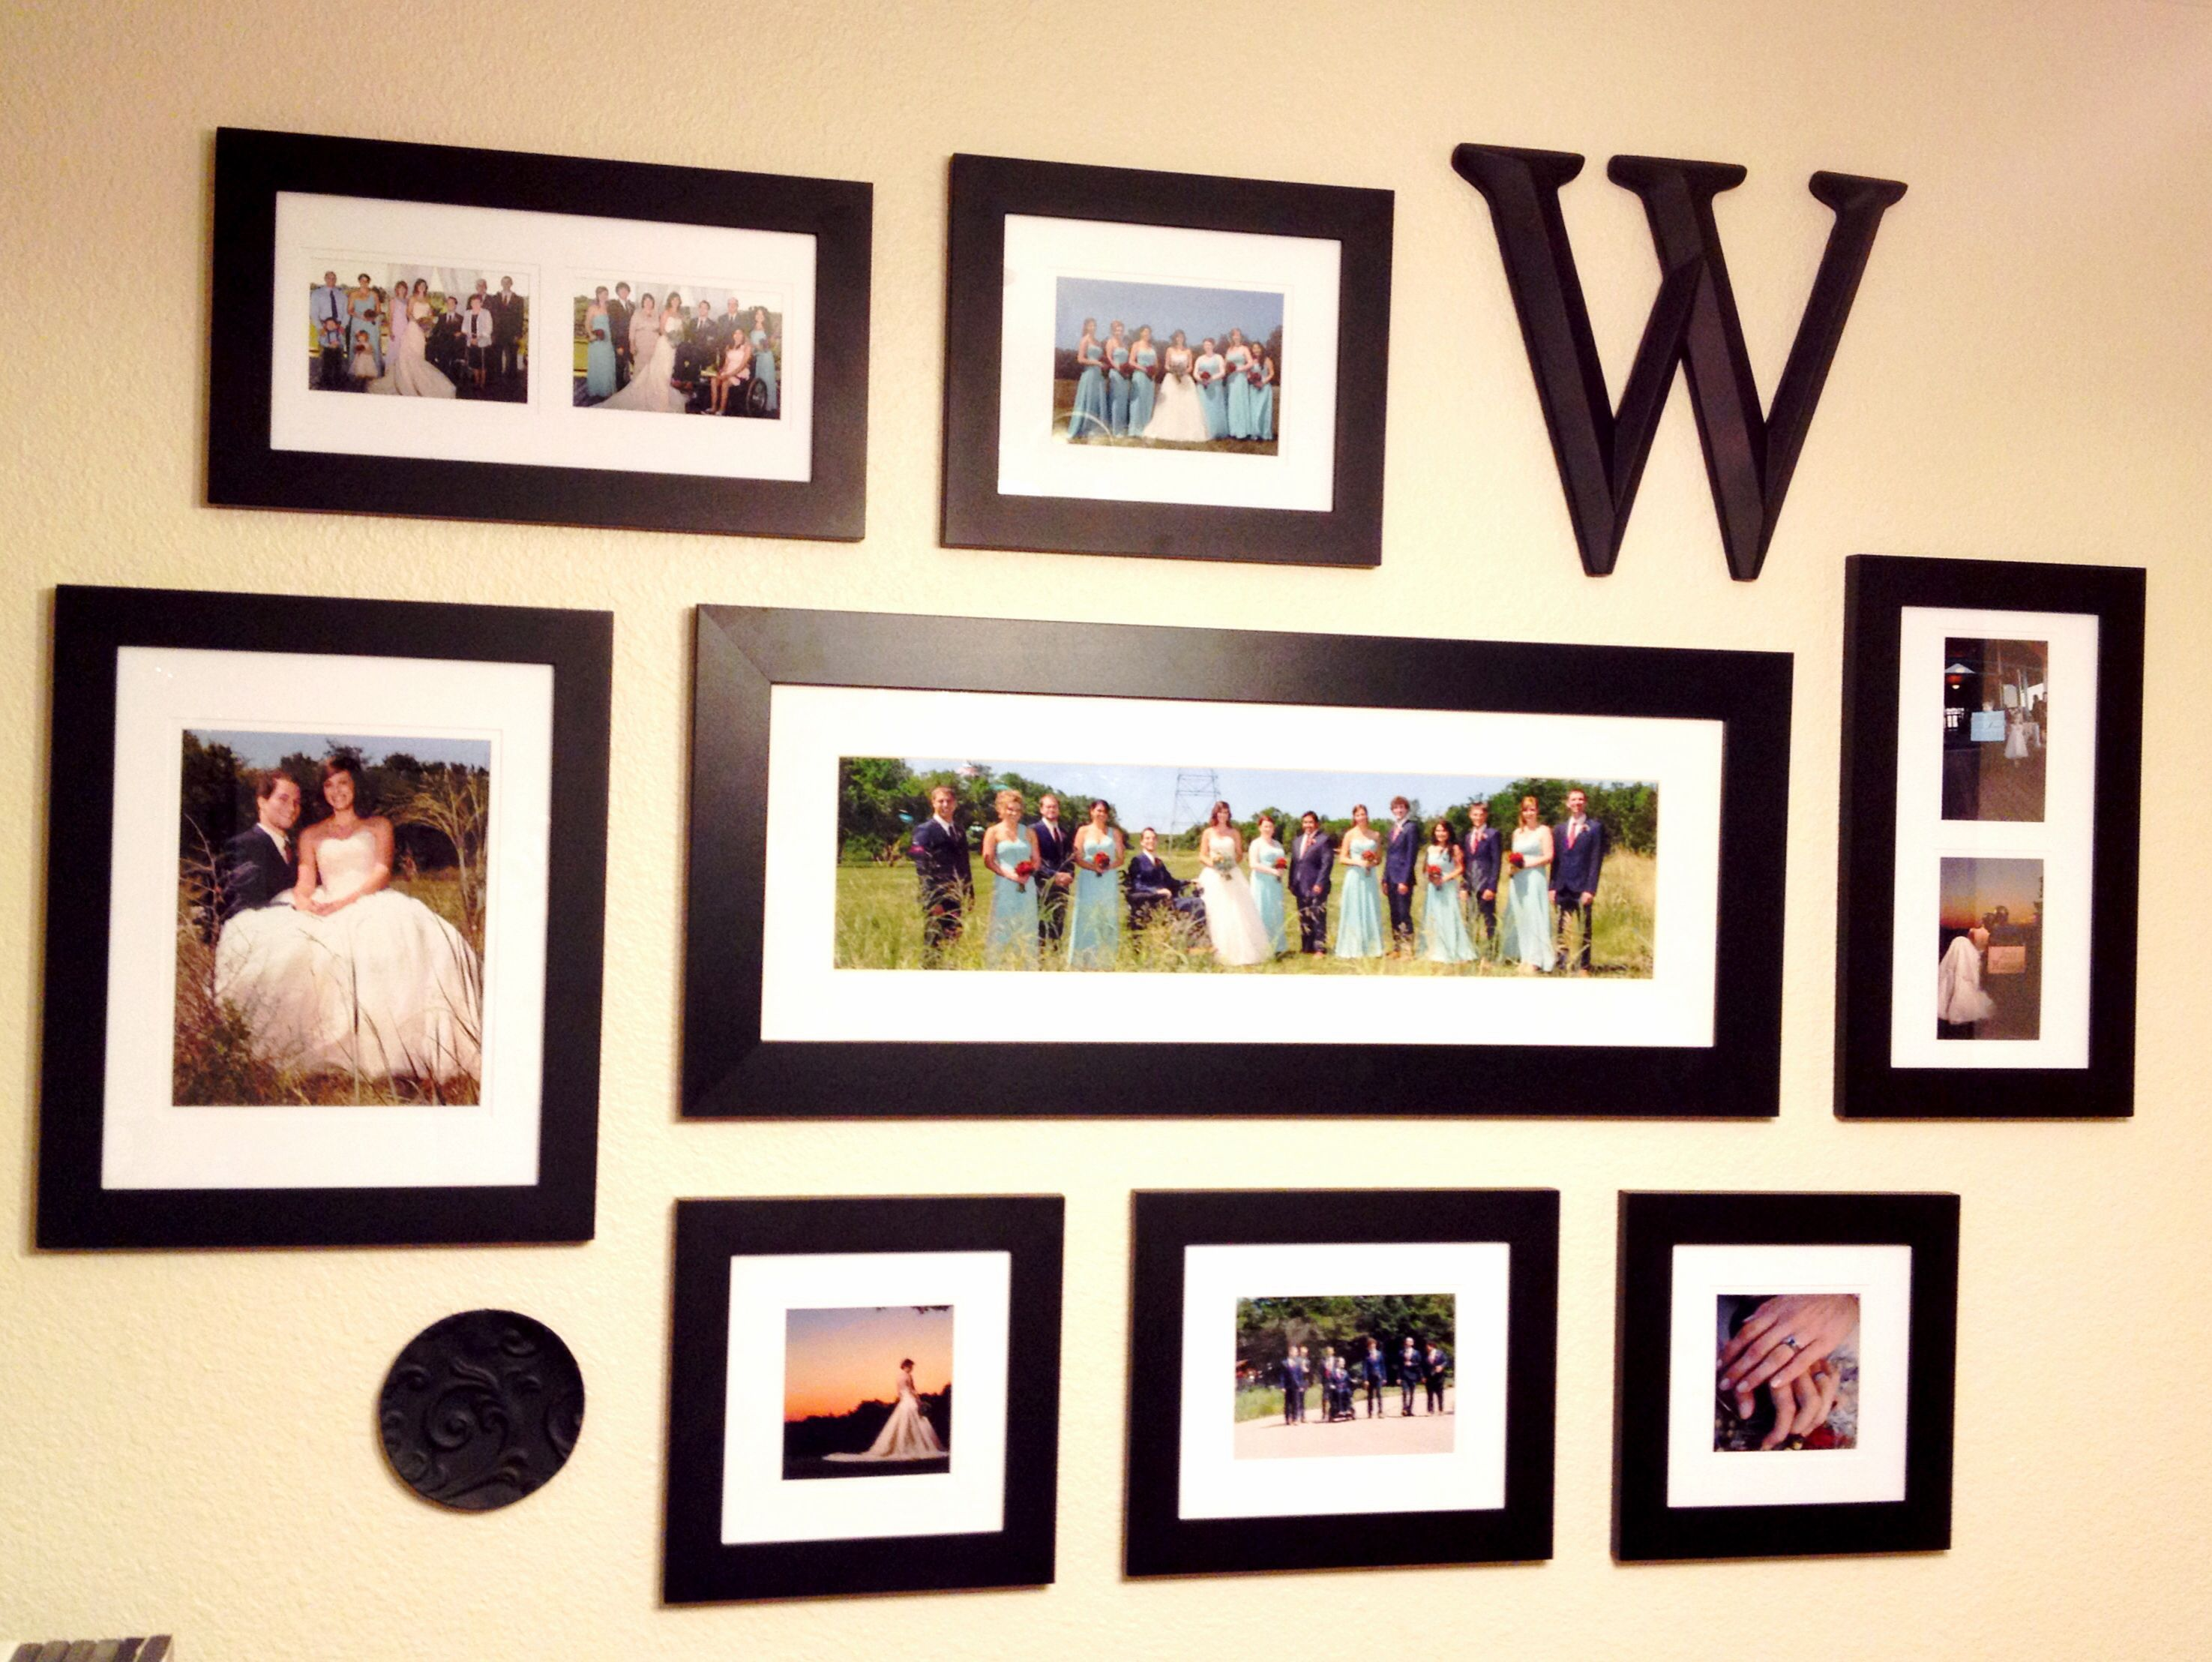 Our photo collage wall of wedding photos home for Collage mural ideas